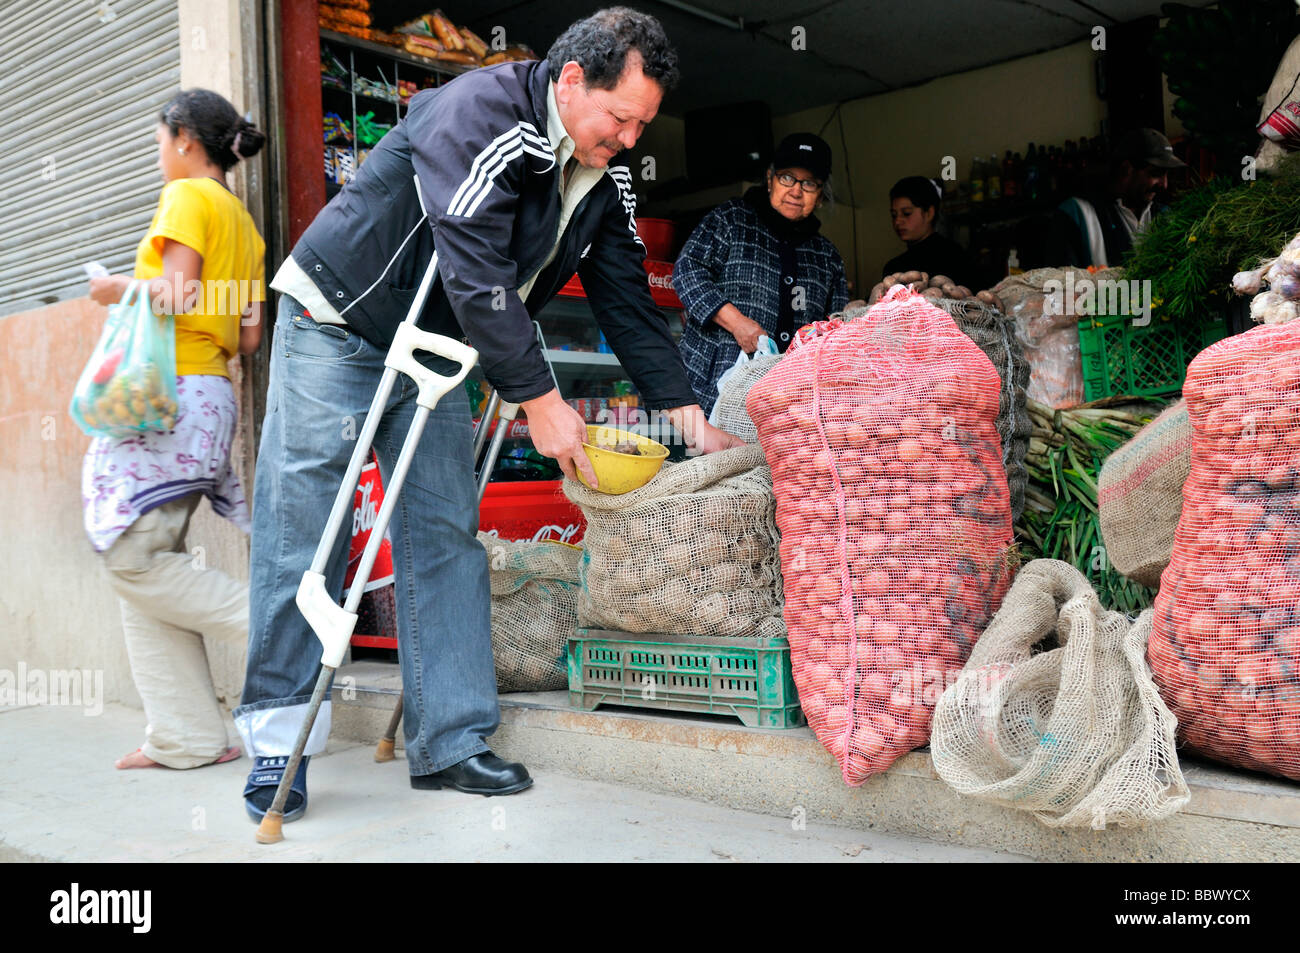 Leprosy patient with crutches shopping in a grocery store, Bogota, Colombia, South America - Stock Image